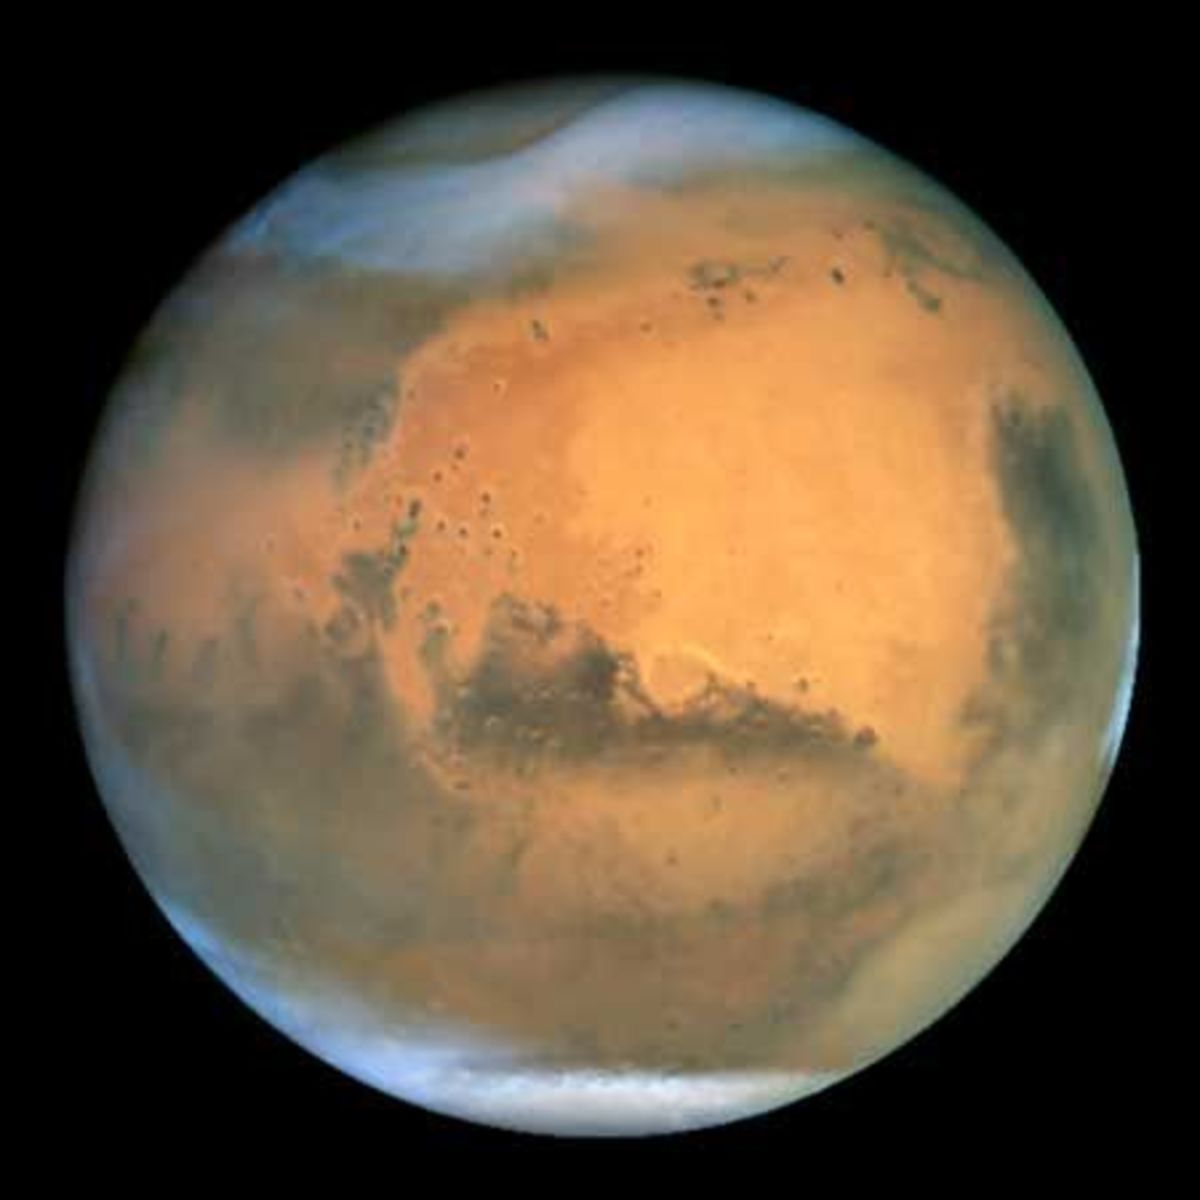 The planet Mars. This photograph was taken by the Hubble Space Telescope